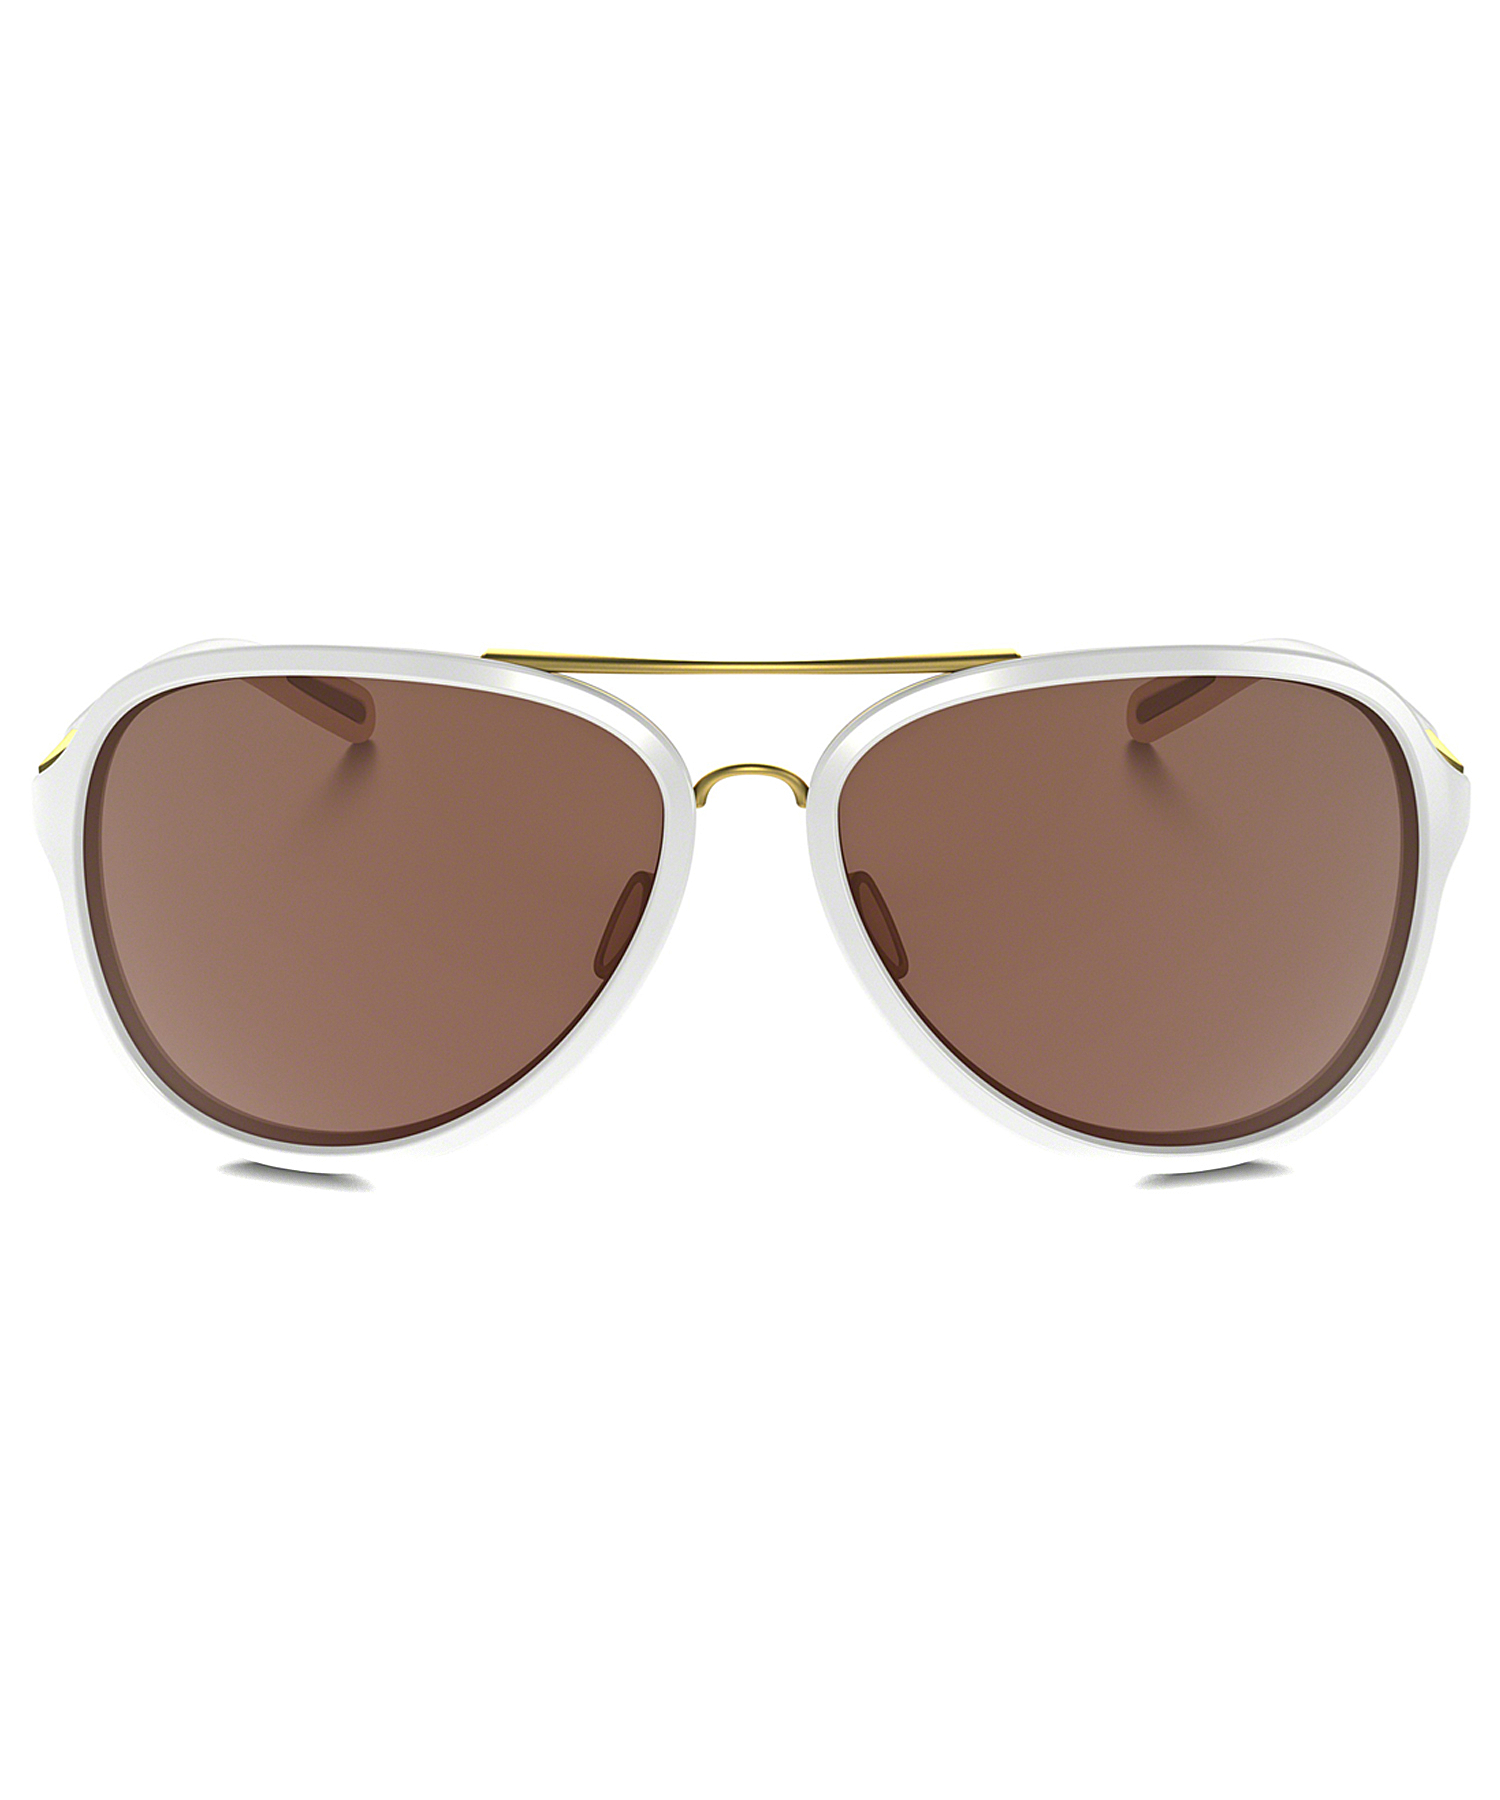 ae5a396b87 Lyst - Oakley Kickback Oo 4102 4102-06 Satin Polished Gold White ...